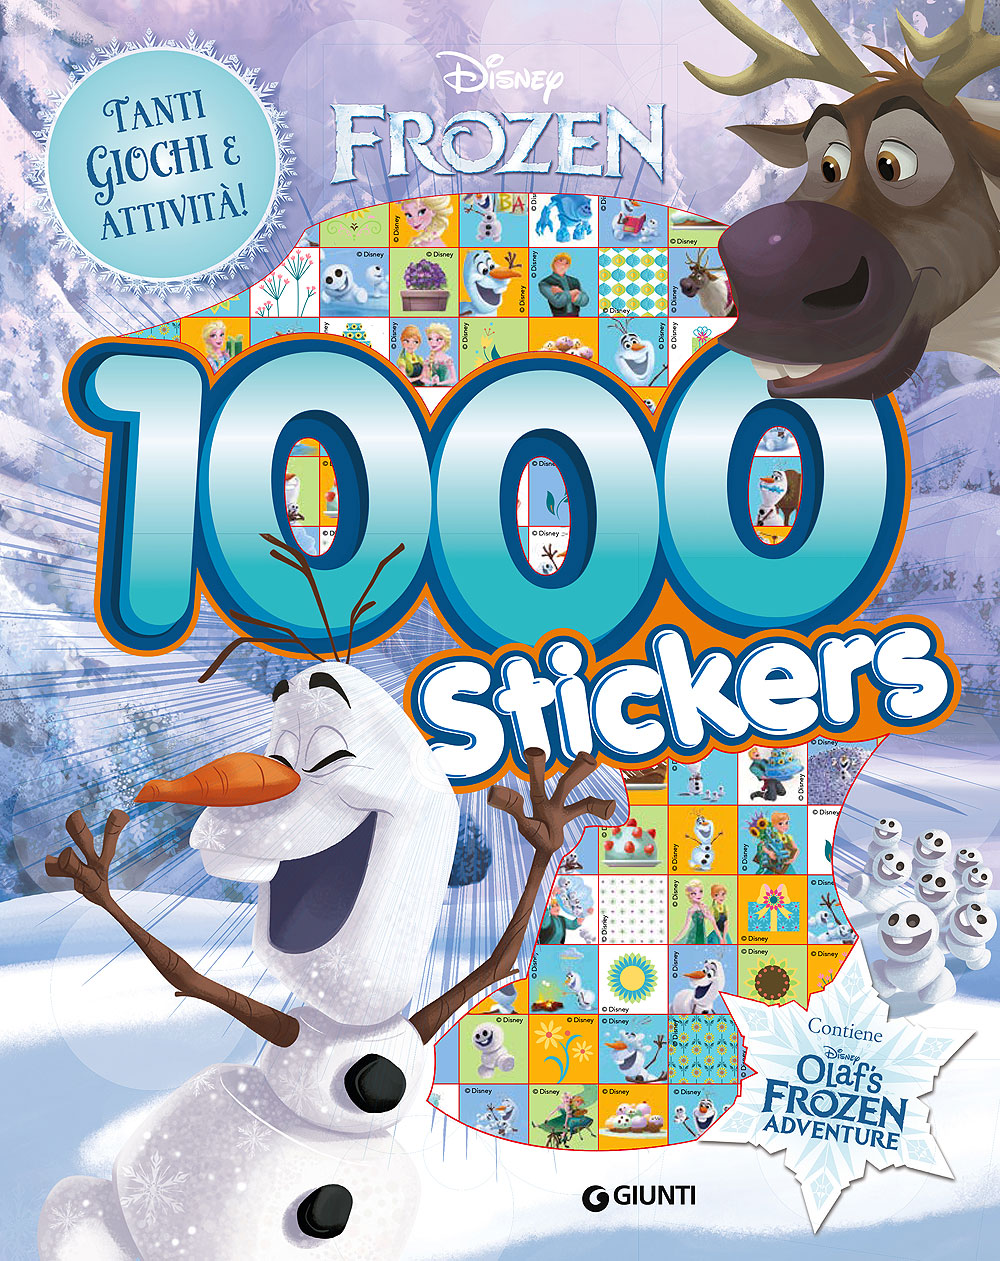 500/1000 Stickers - Frozen. 1000 Stickers